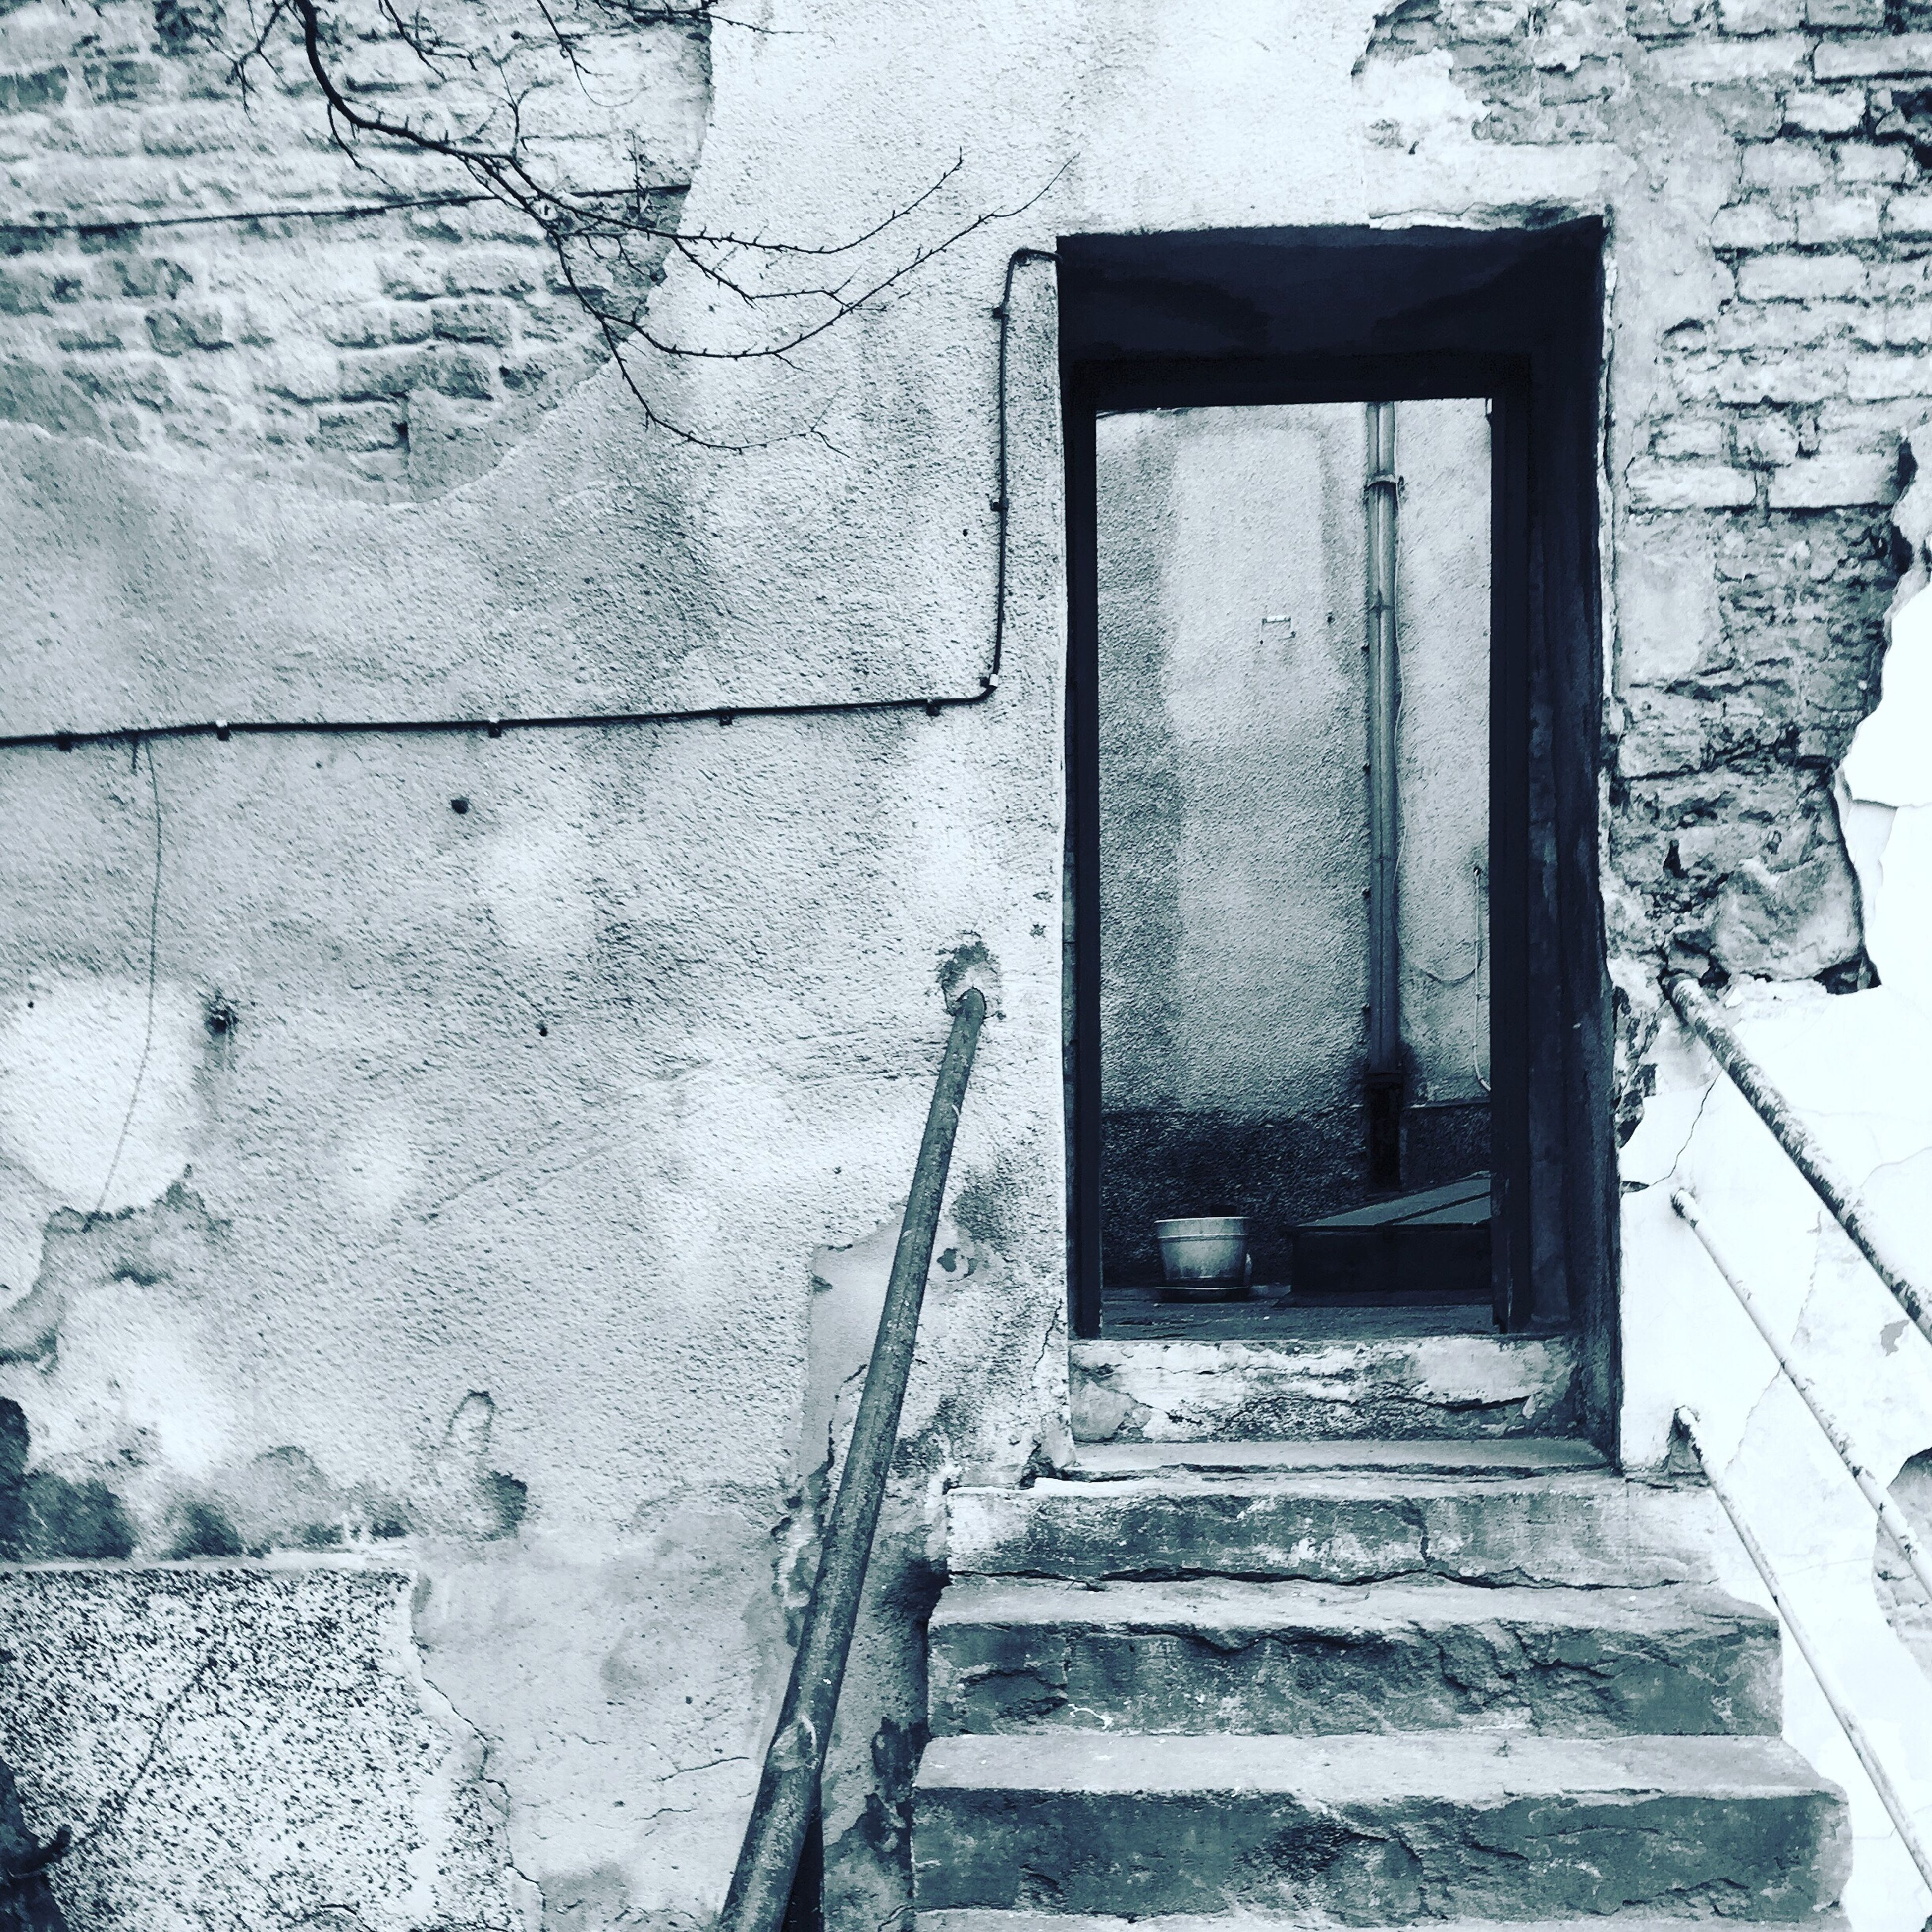 architecture, built structure, building exterior, window, wall - building feature, steps, old, wall, closed, door, house, brick wall, building, weathered, day, entrance, outdoors, residential structure, no people, staircase